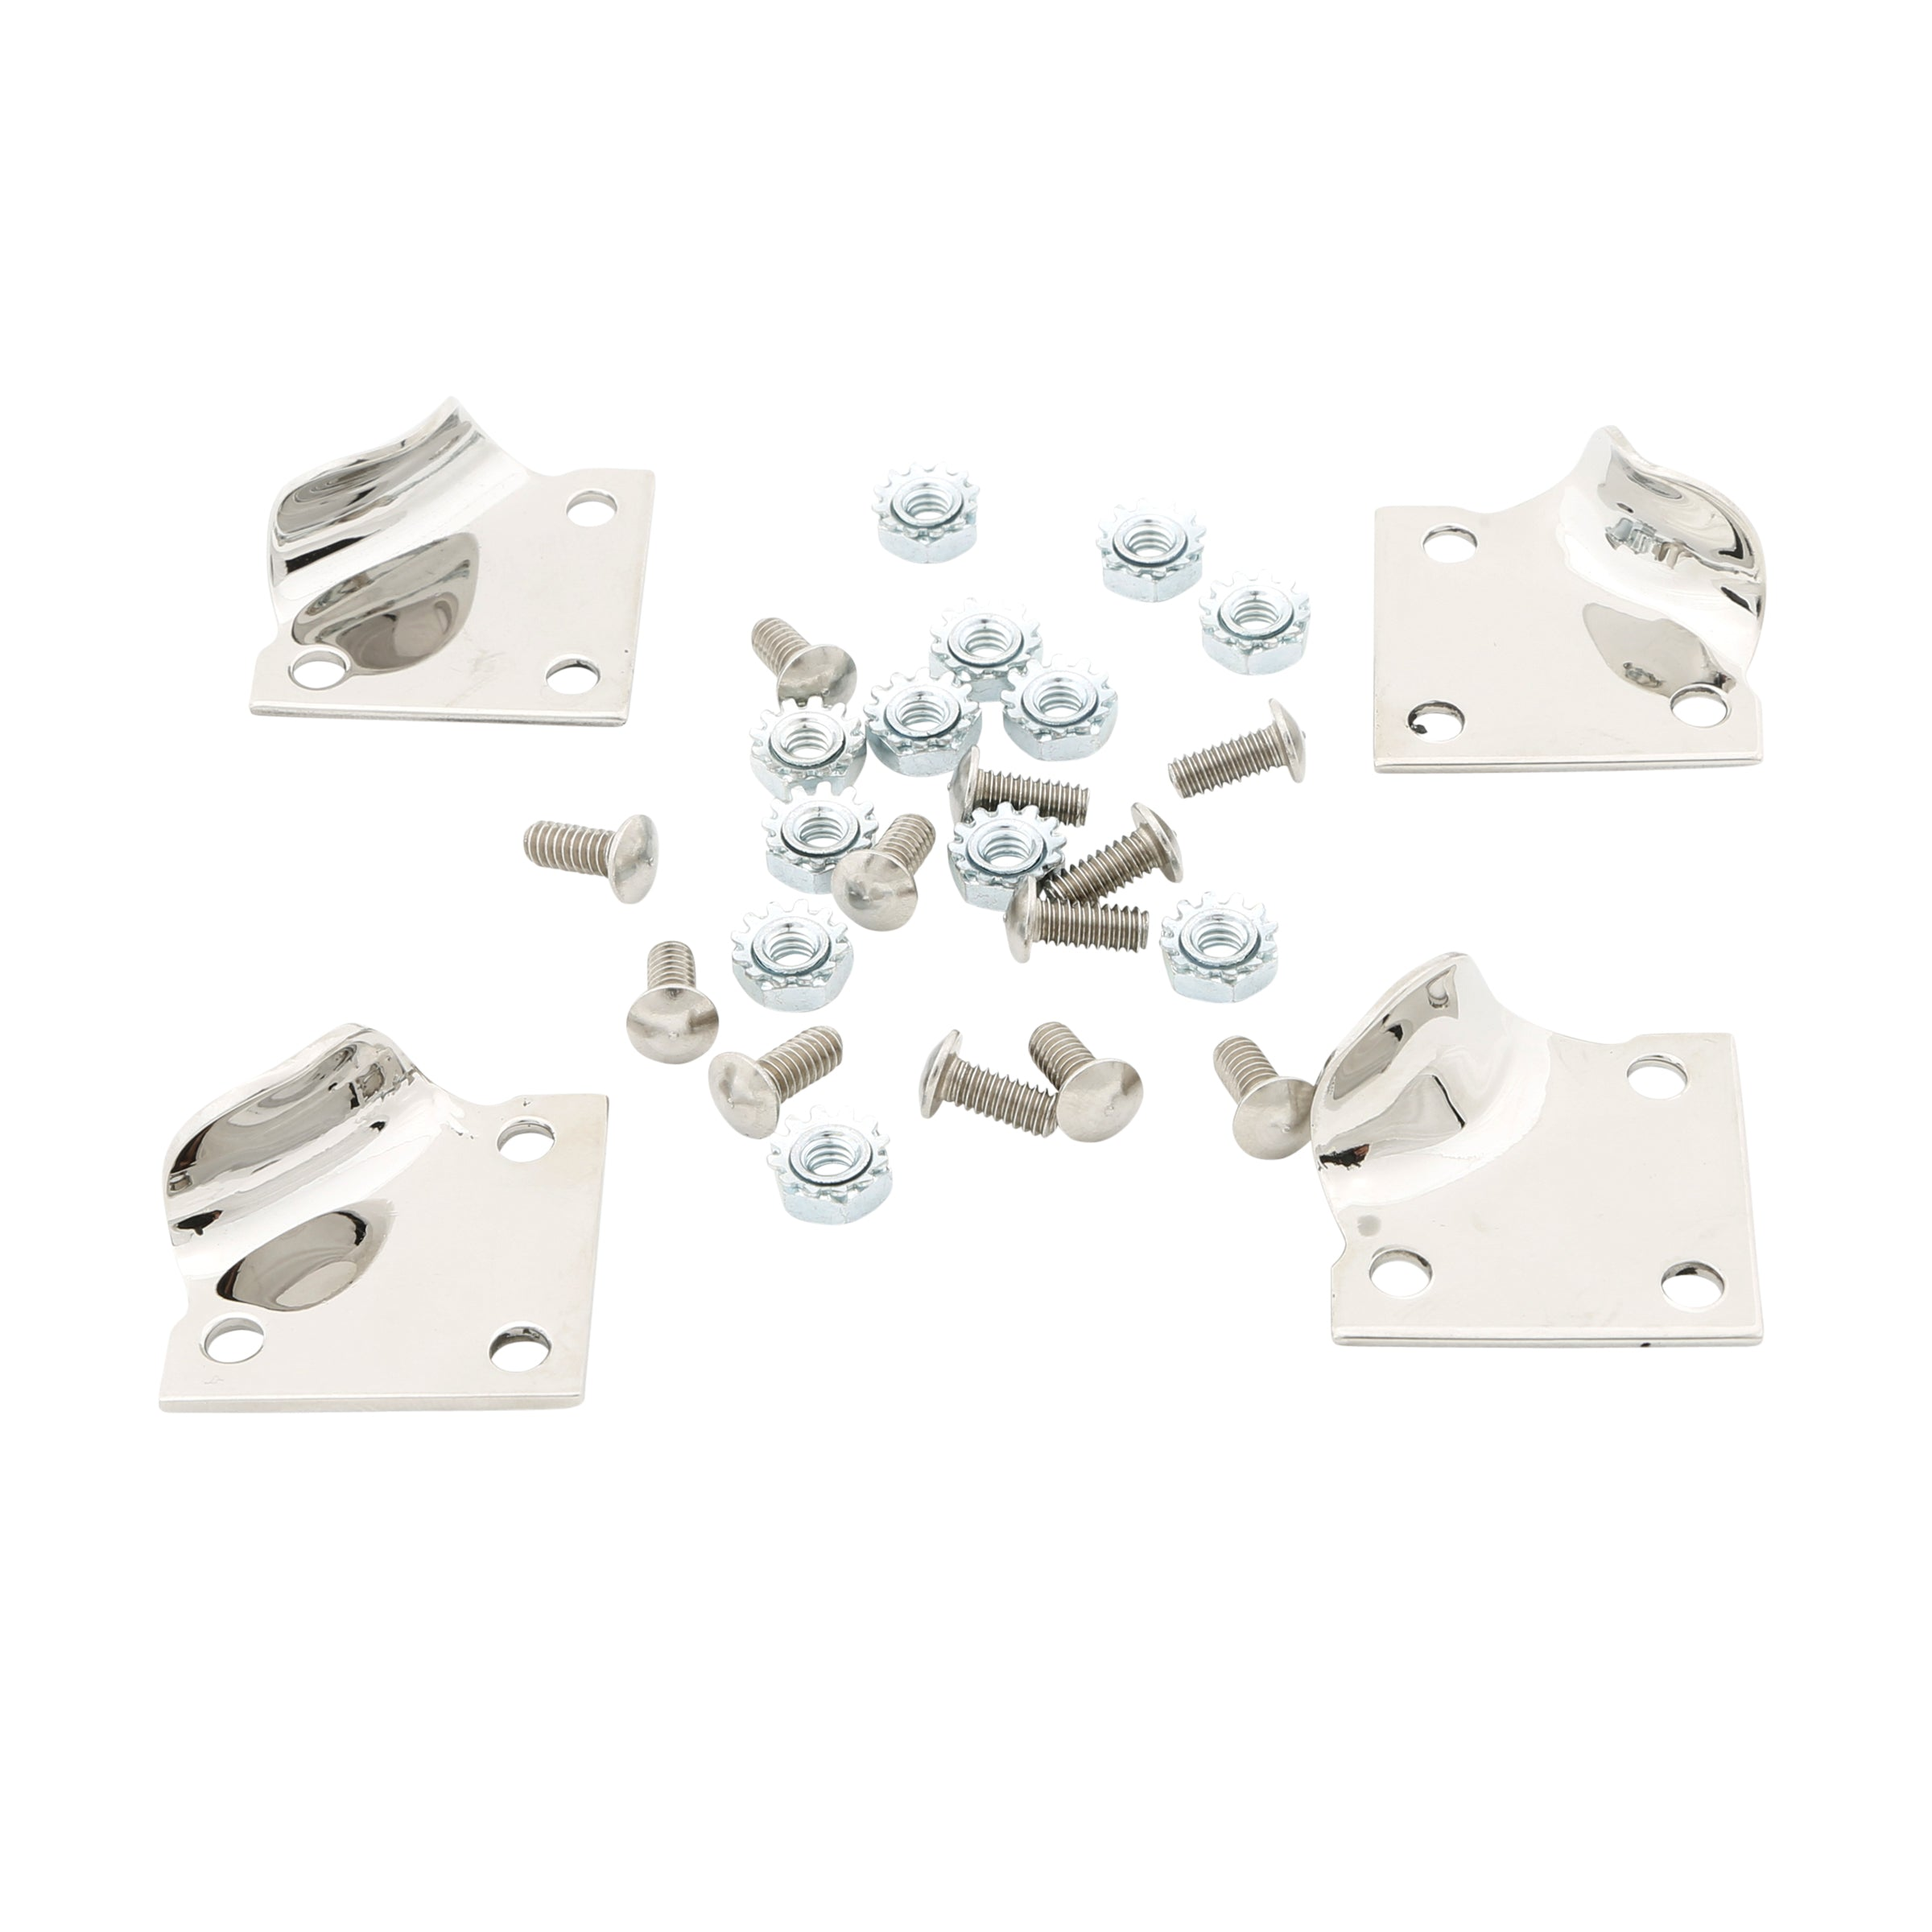 Hood Latch Clip Bracket Set • 1928-31